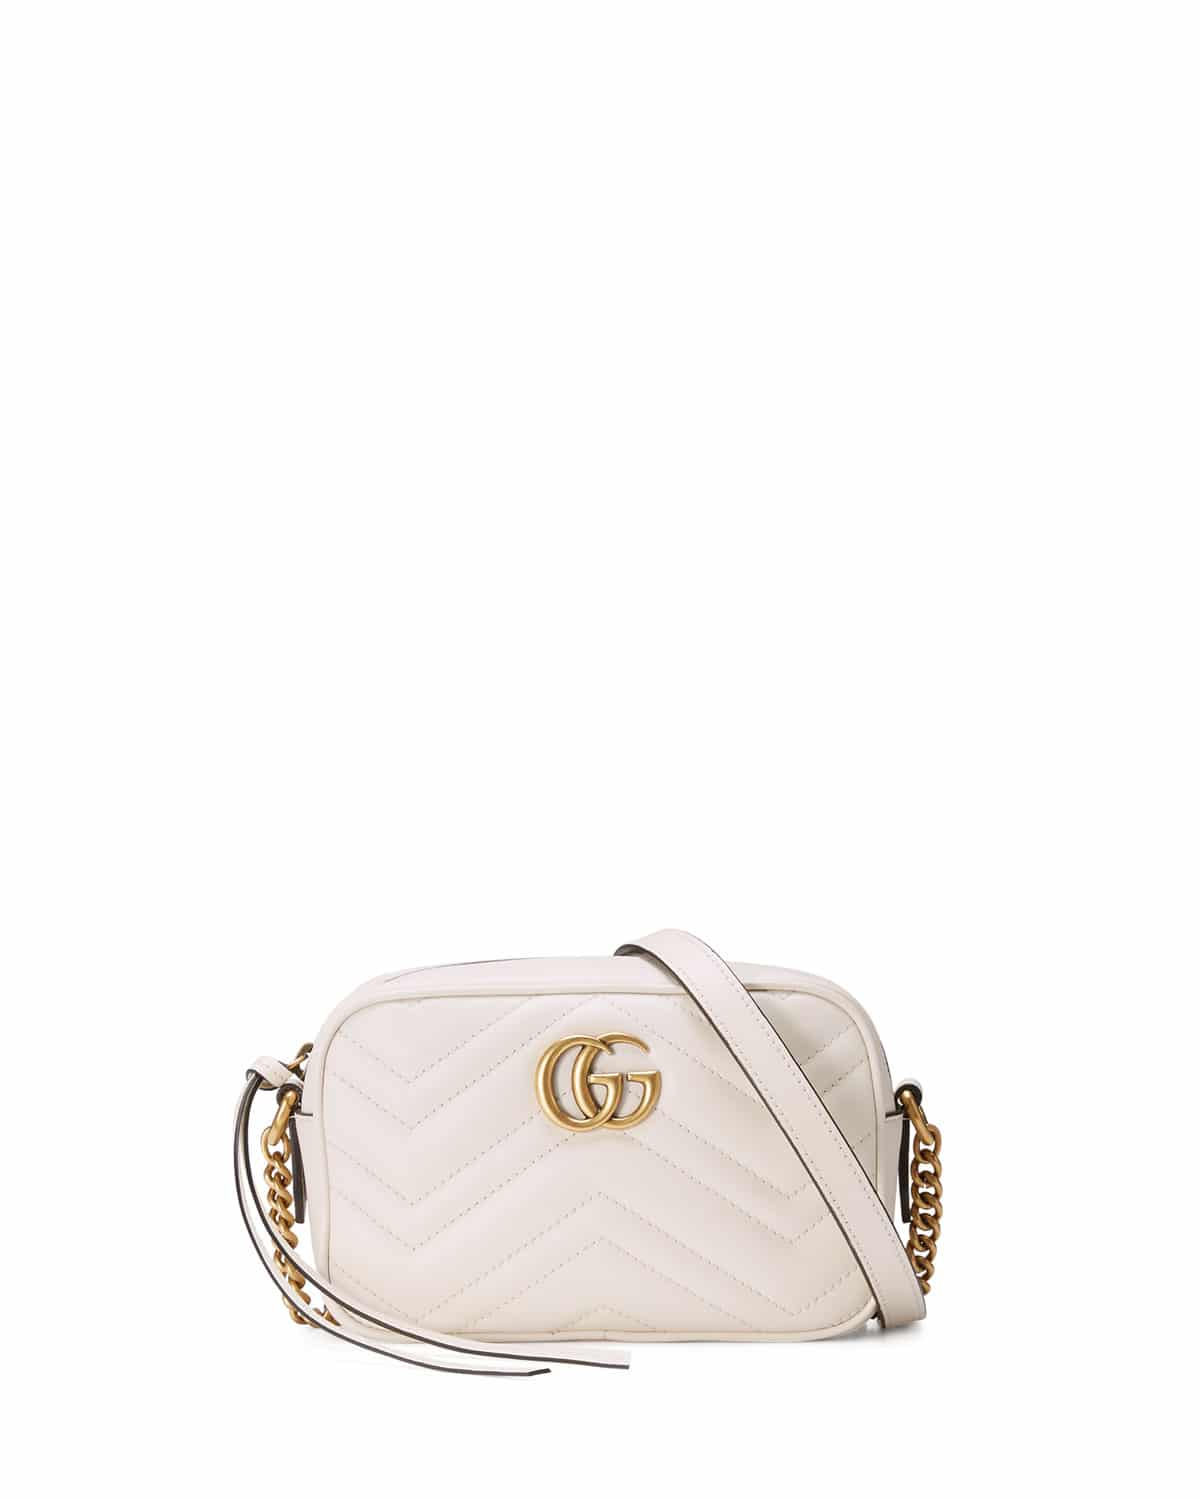 6003a94589a Gucci White GG Marmont Mini Matelasse Camera Bag